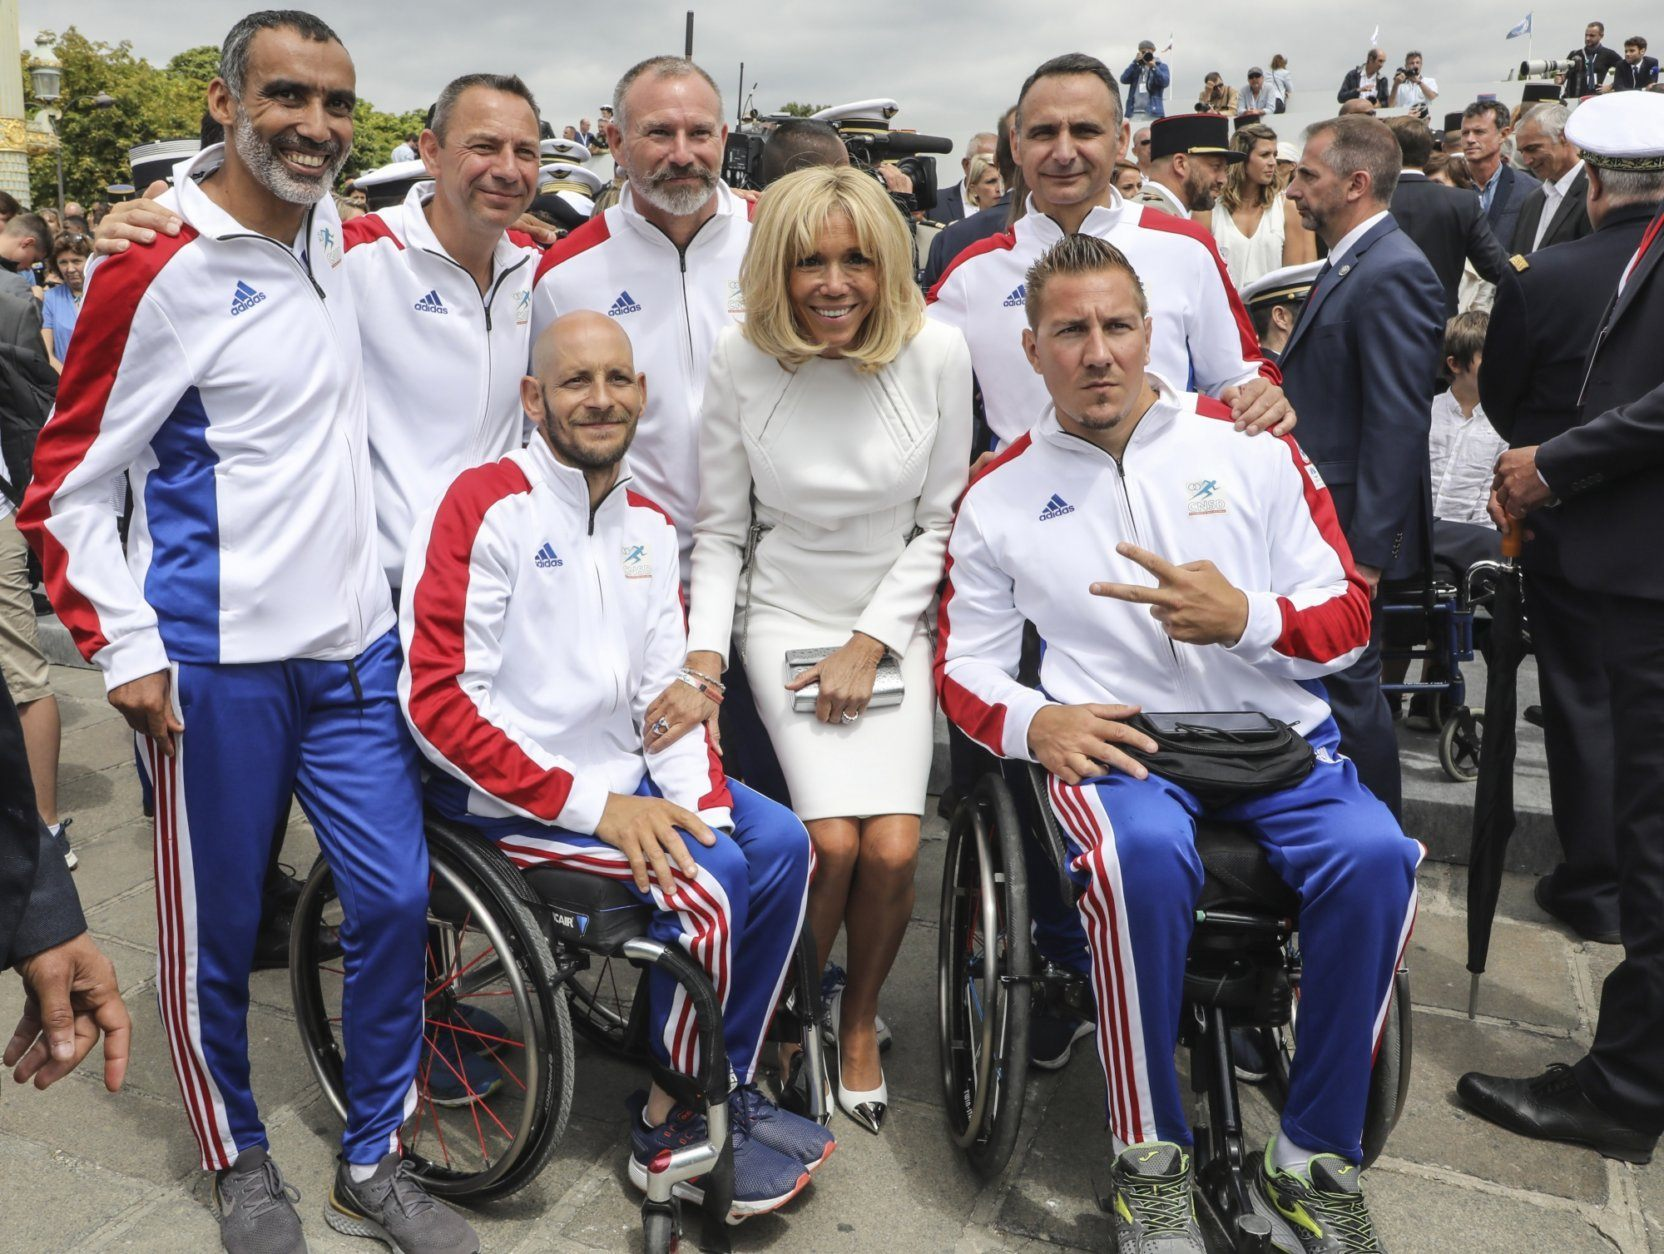 French wife's president Brigitte Macron poses with members of the French military sport's team after the annual Bastille Day military parade on the Champs-Elysees in Paris Sunday July 14, 2019. (Ludovic Marin/POOL via AP)